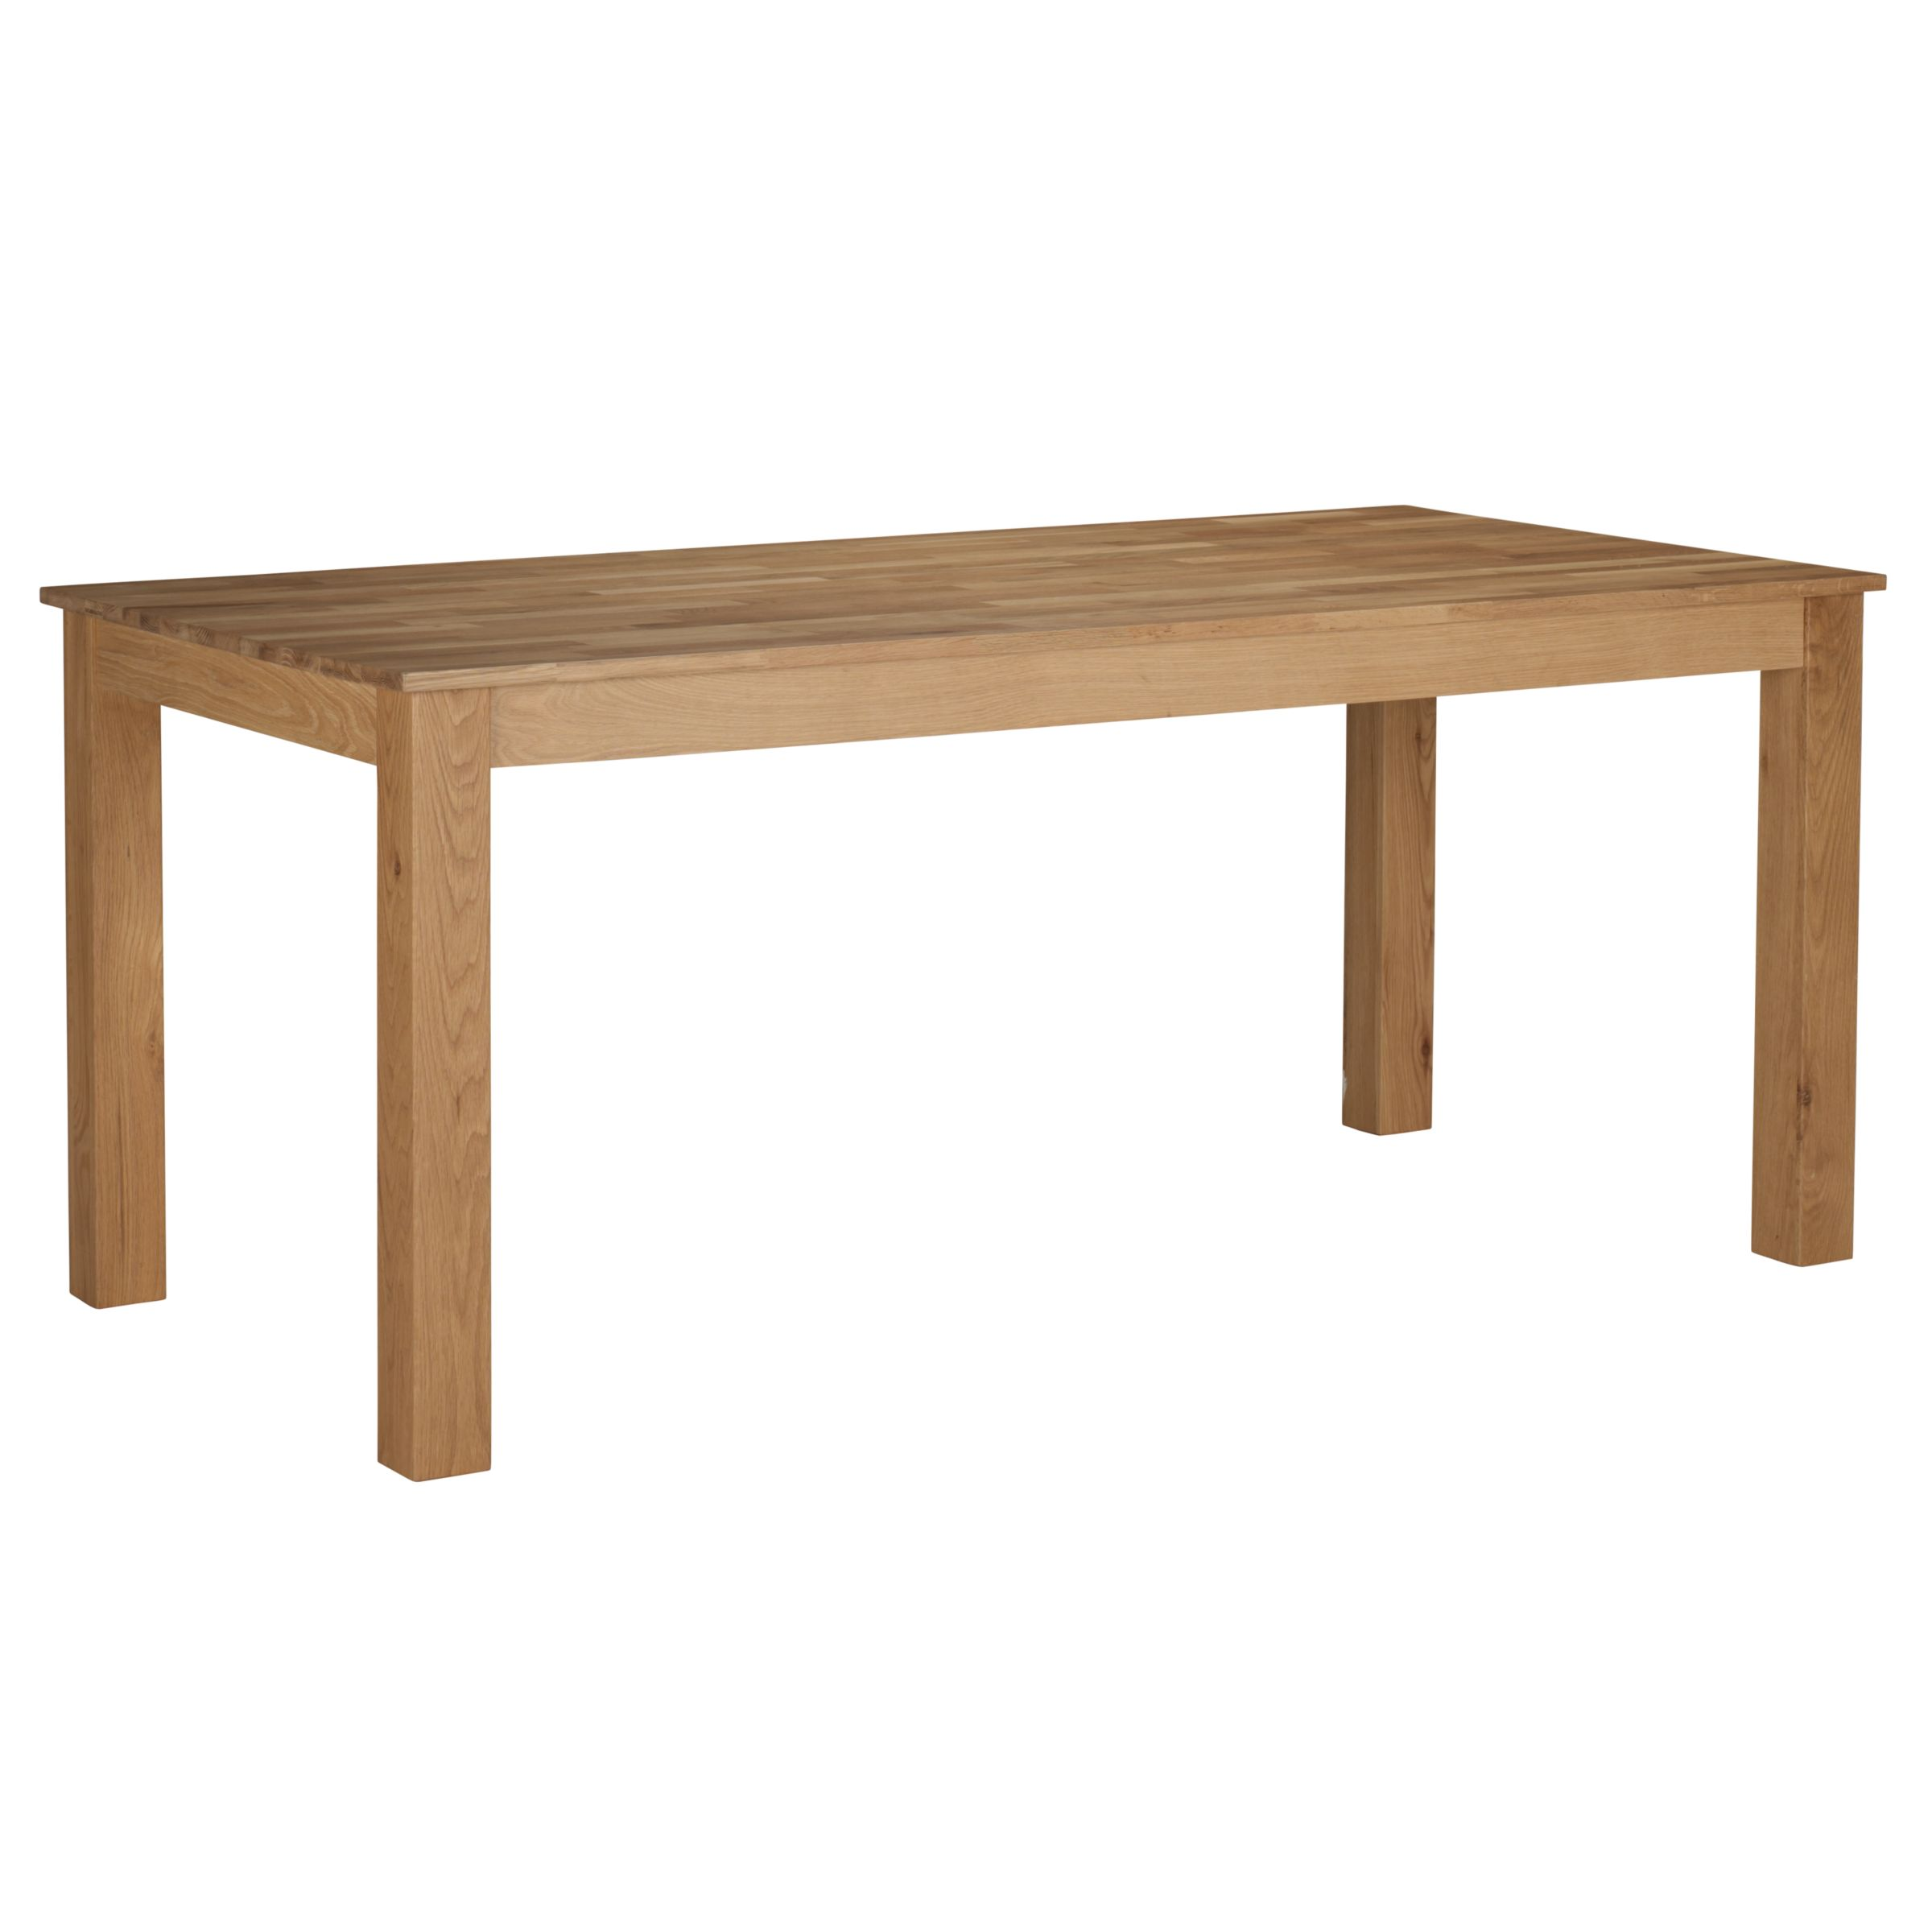 john lewis tables and chairs : 231080983alt5 from www.comparestoreprices.co.uk size 1600 x 1600 jpeg 97kB